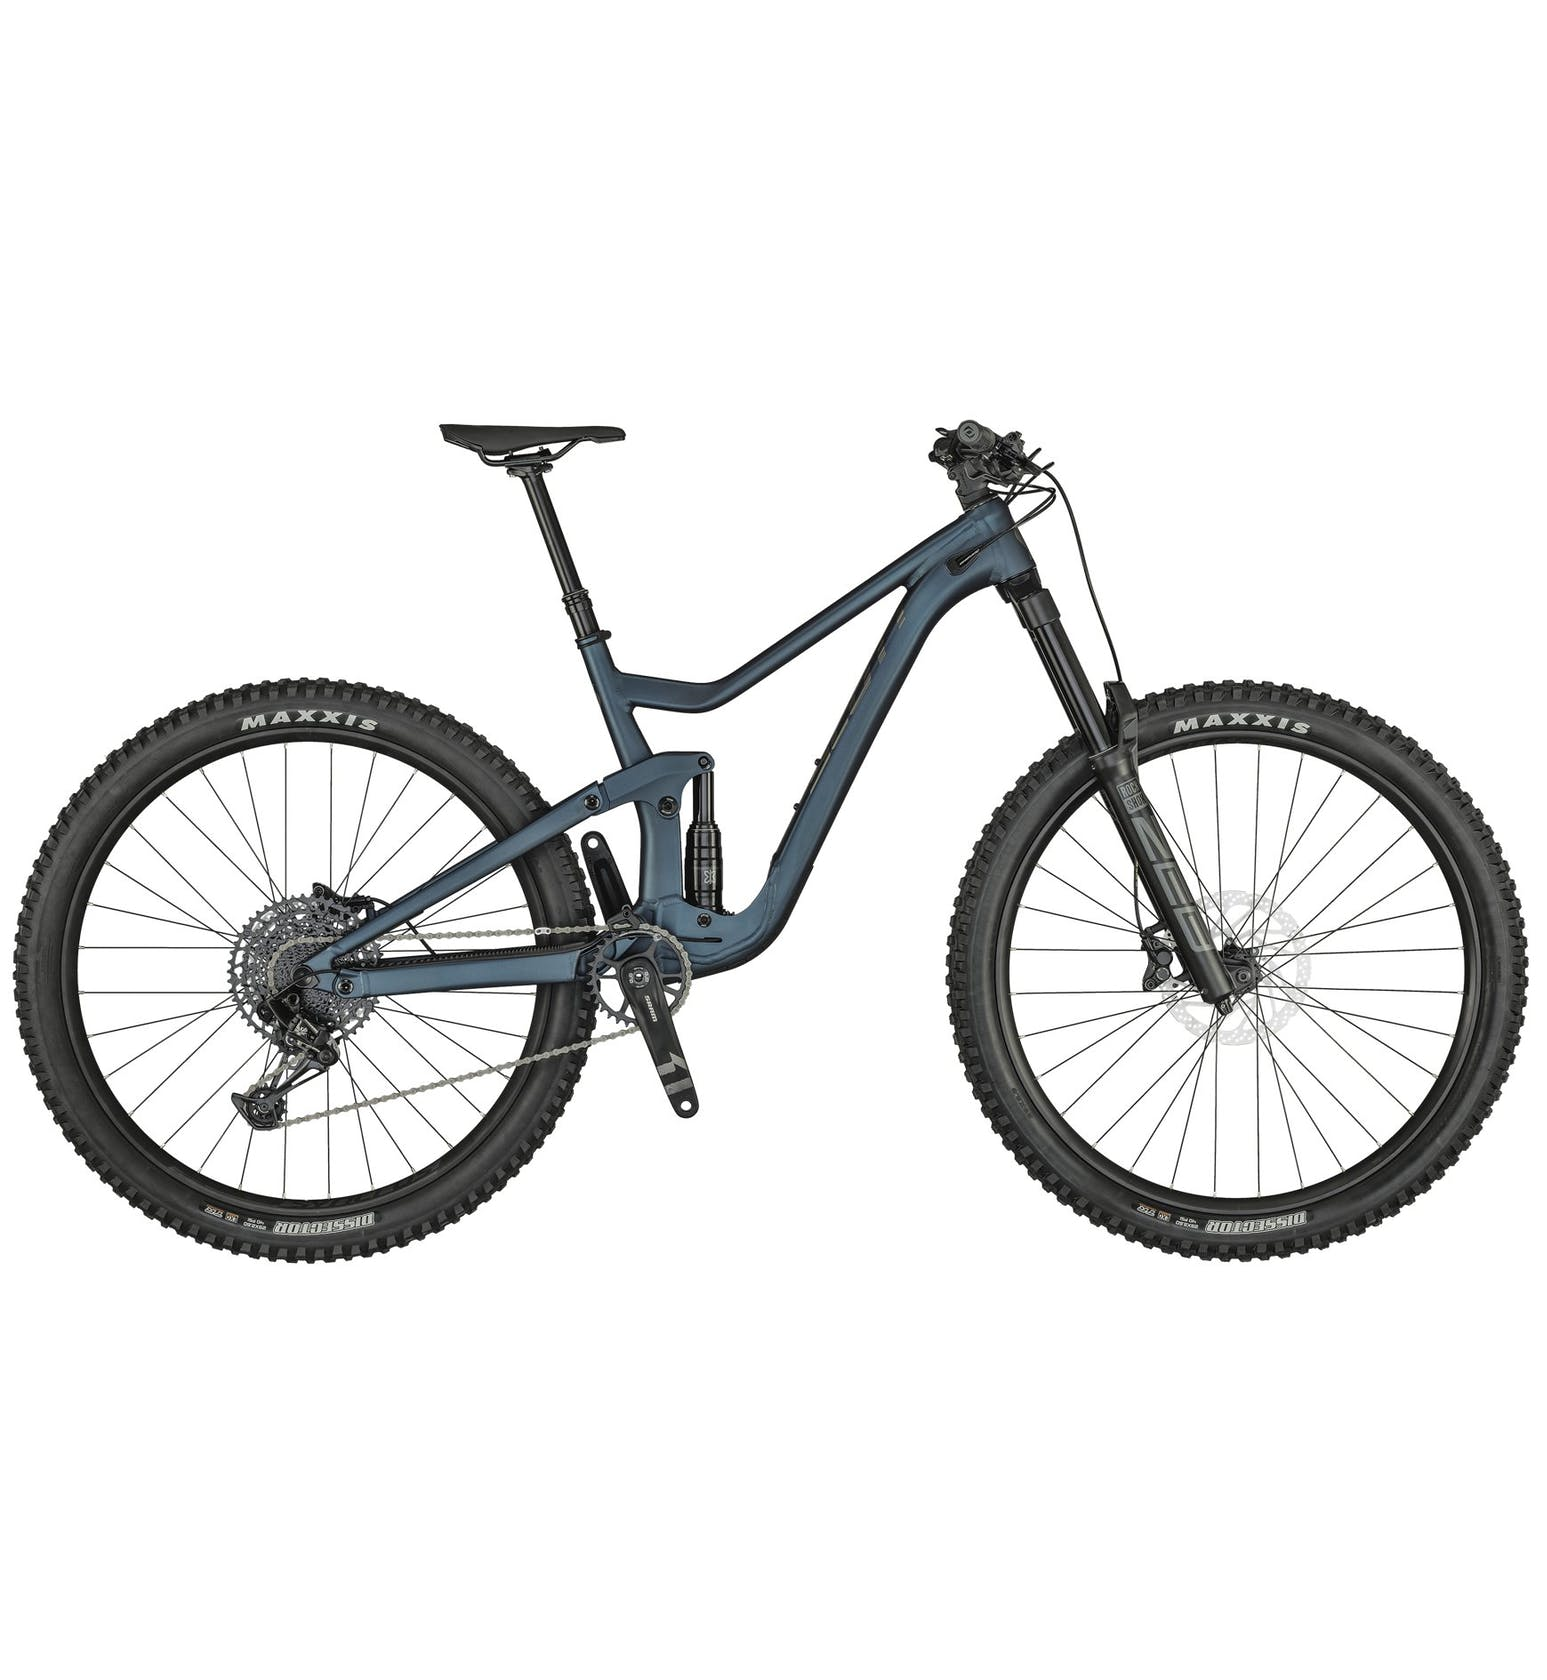 SCOTT Ransom 930 (2021) - Enduro